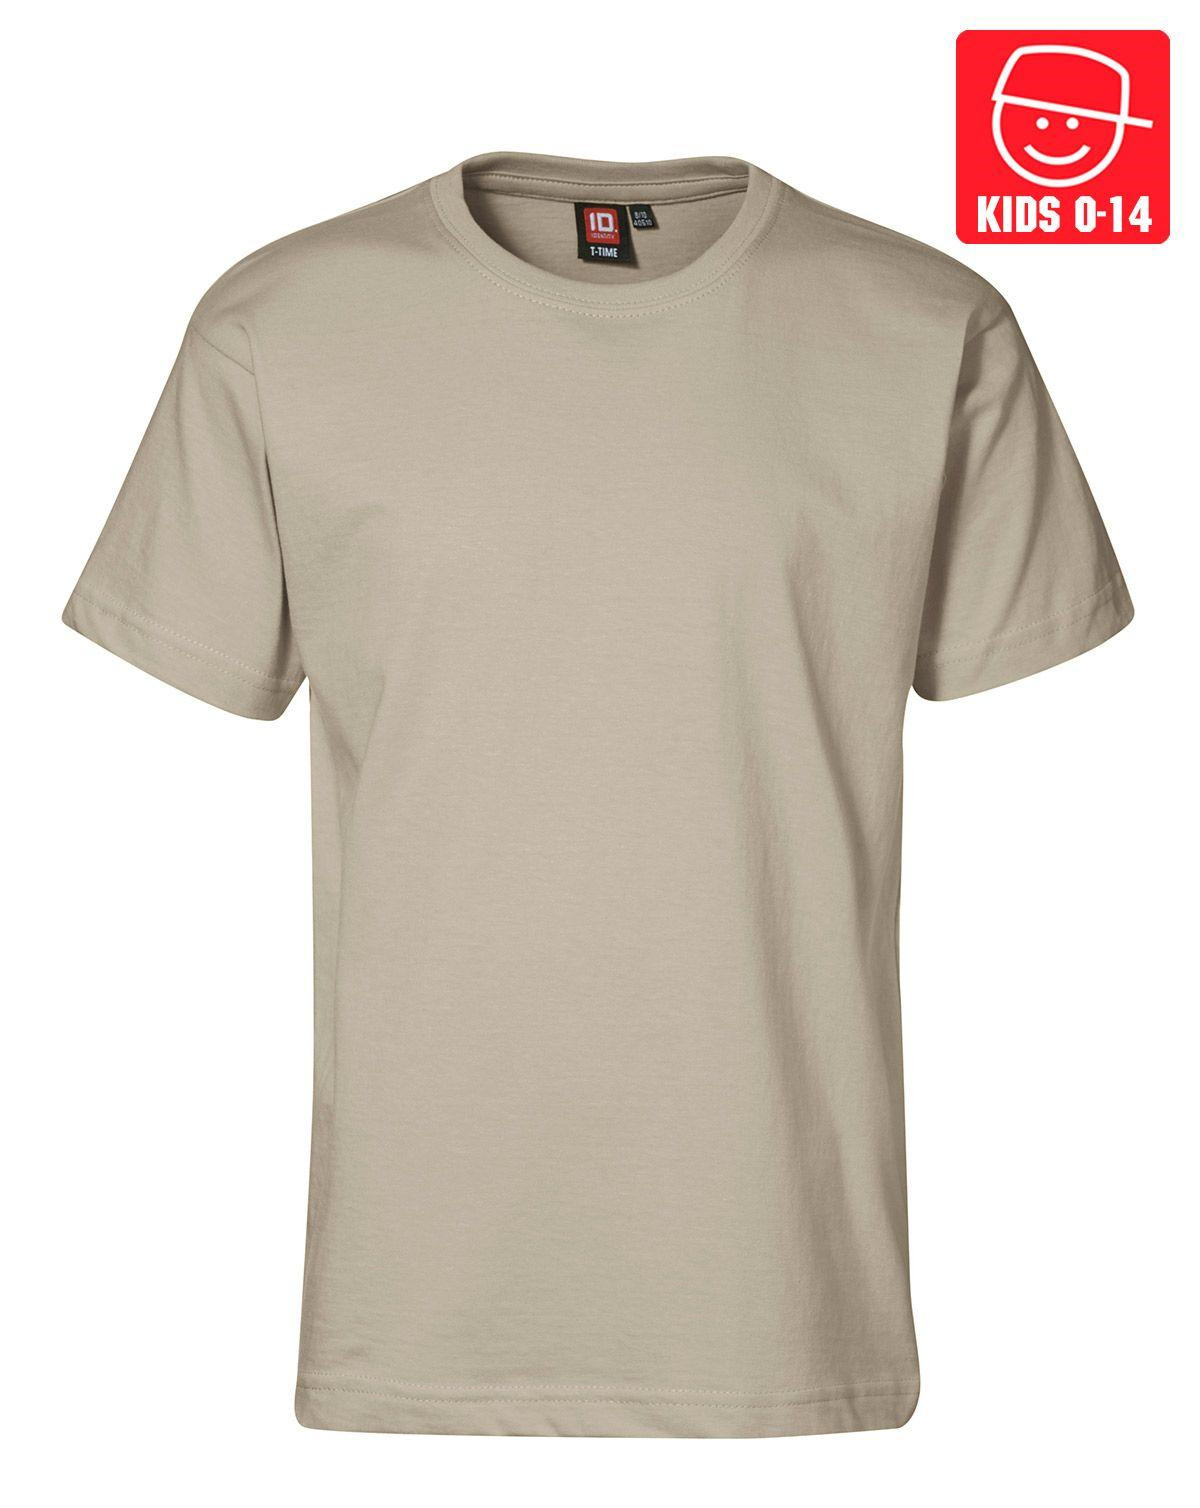 Image of   ID T-TIME T-shirt (Khaki, 152)